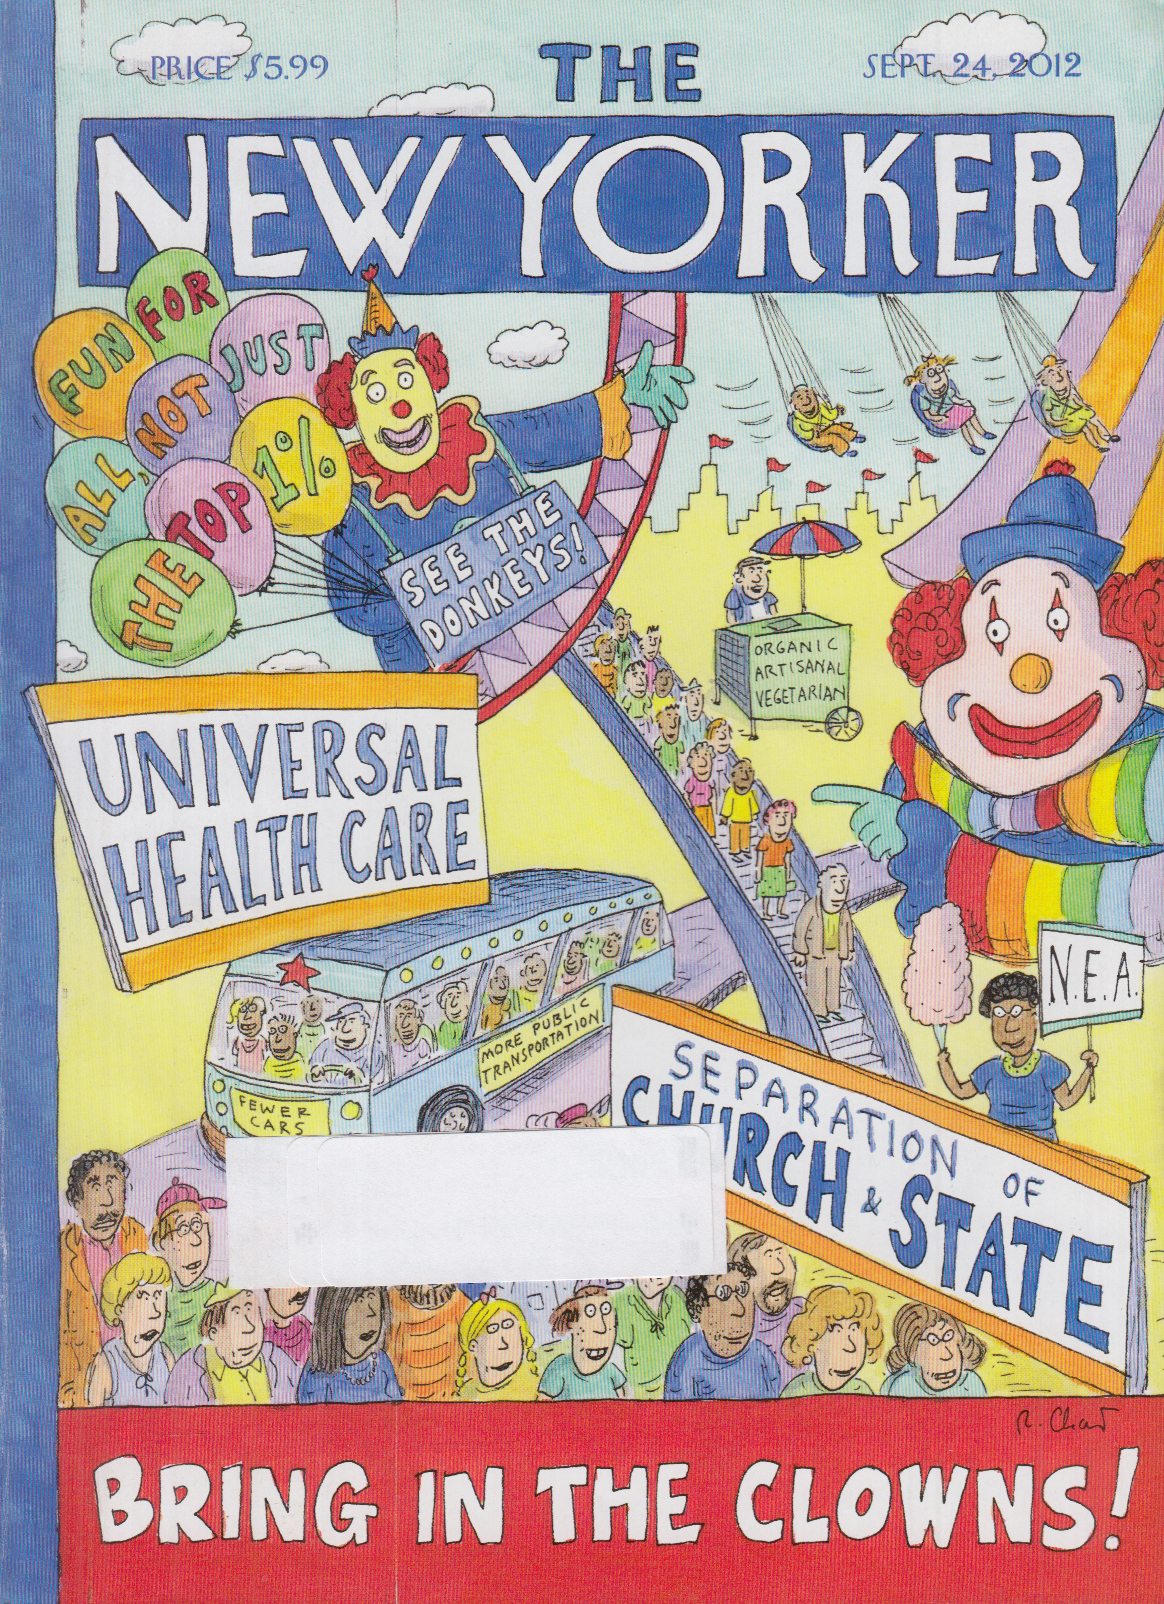 New Yorker cover Chast 9/24 2012 Democratic causes Bring the Clowns circus